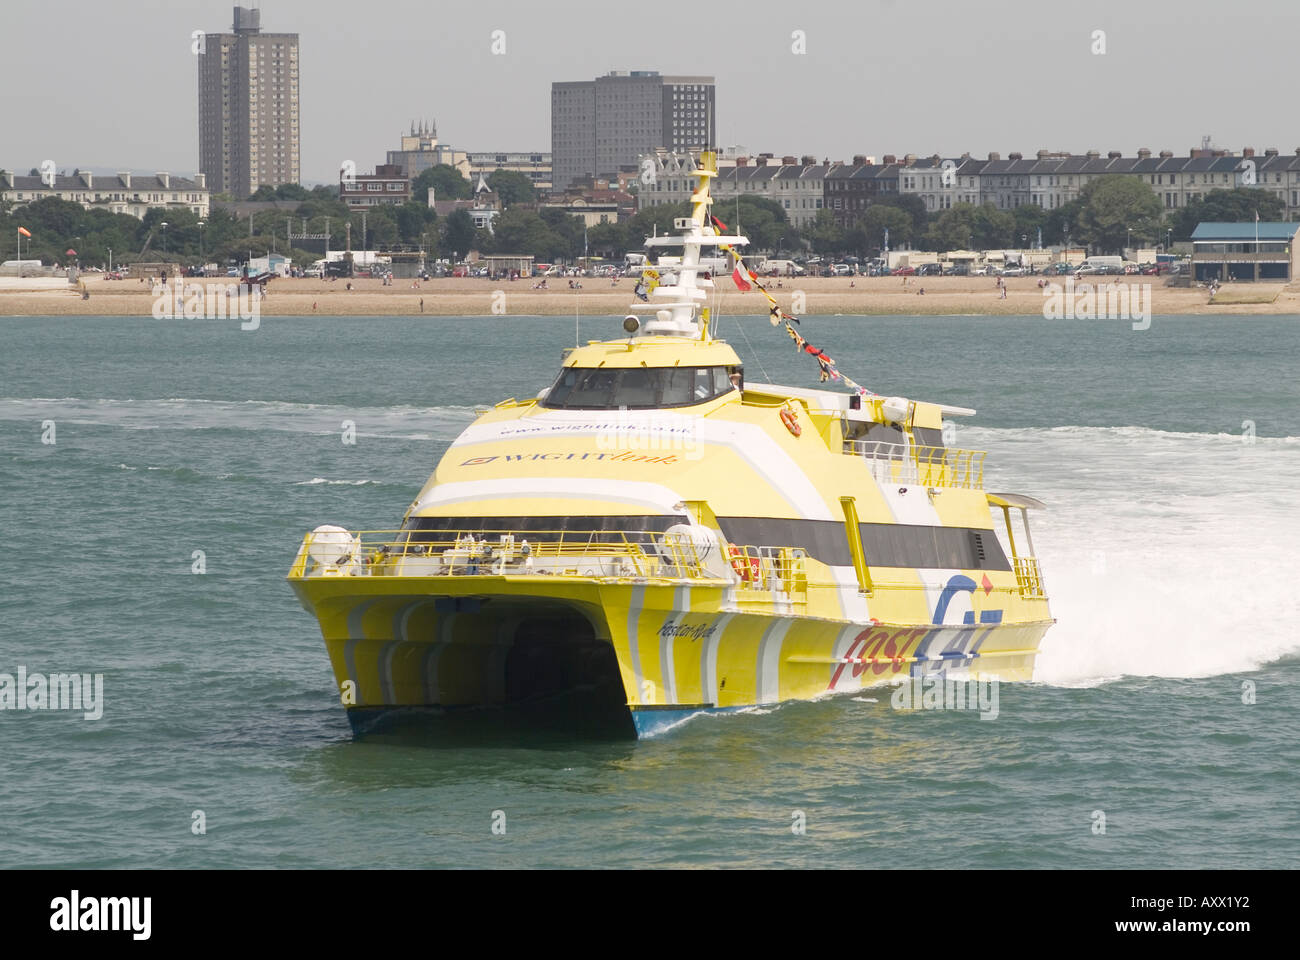 Wight link fast cat leaving Portsmouth for Ryde on the Isle of Wight Stock Photo